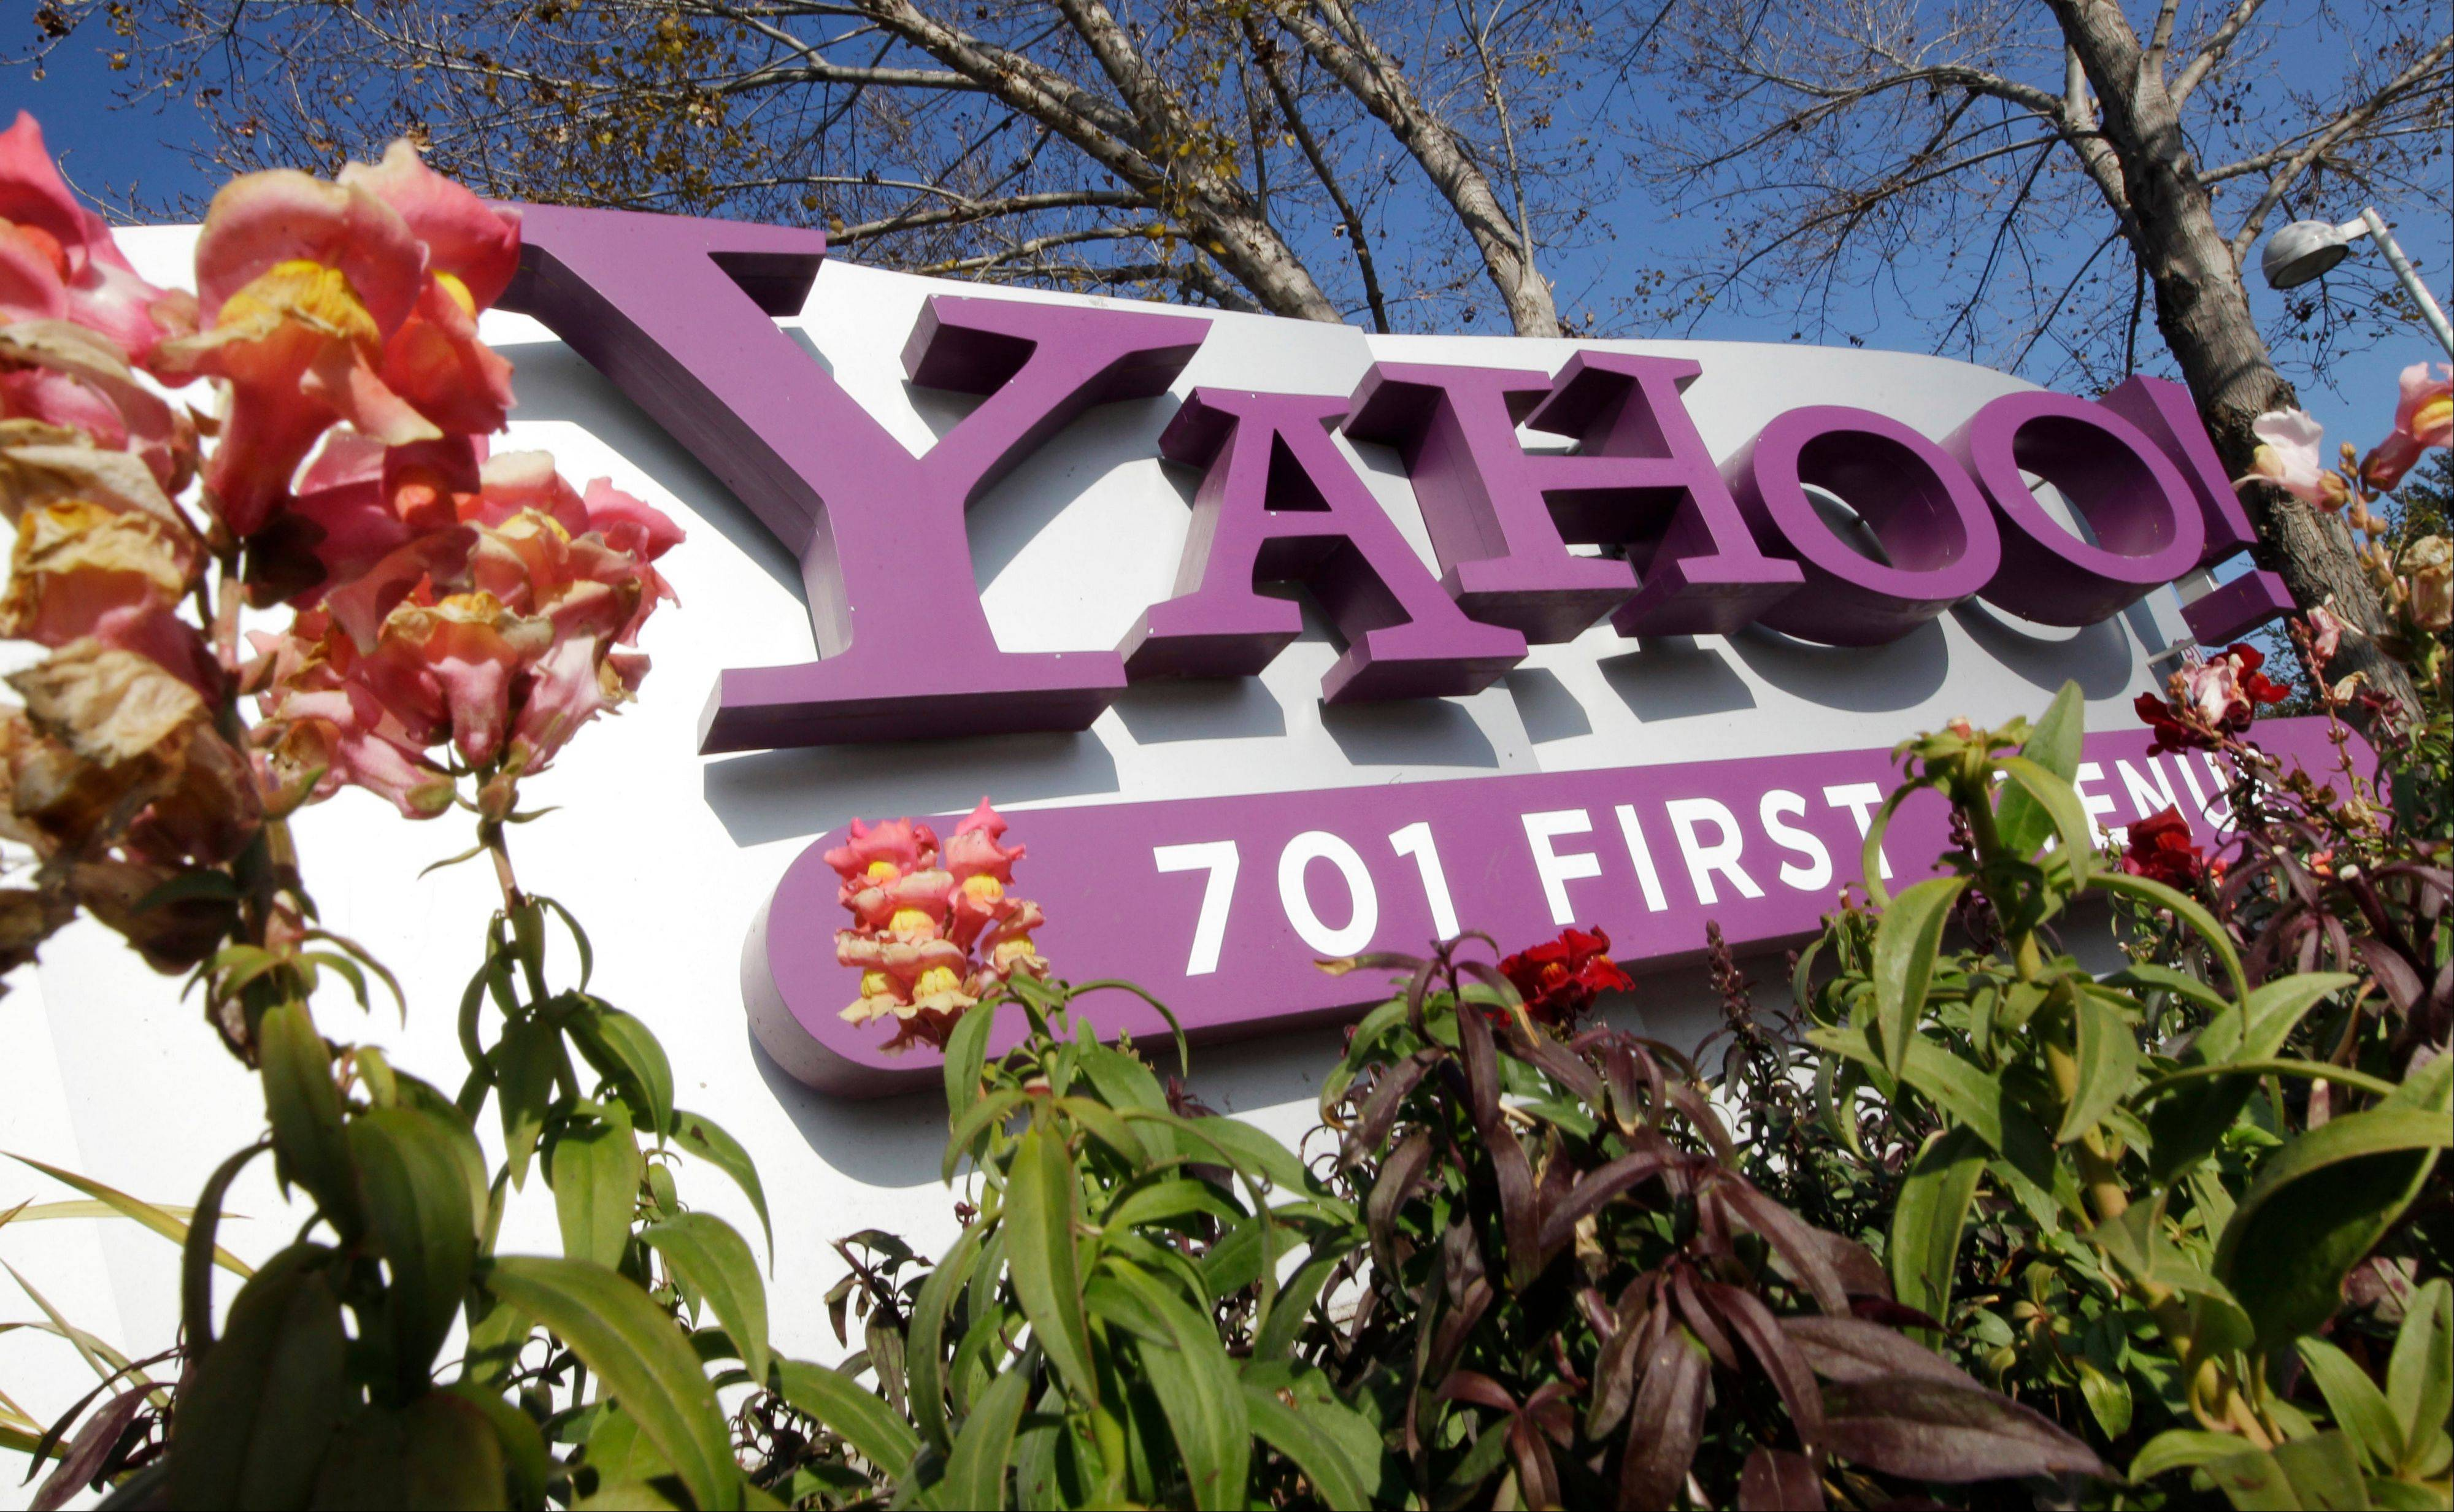 Yahoo CEO Marissa Mayer insists the long-stumbling Internet company has finally regained its stride, even though its revenue is still stuck in reverse.